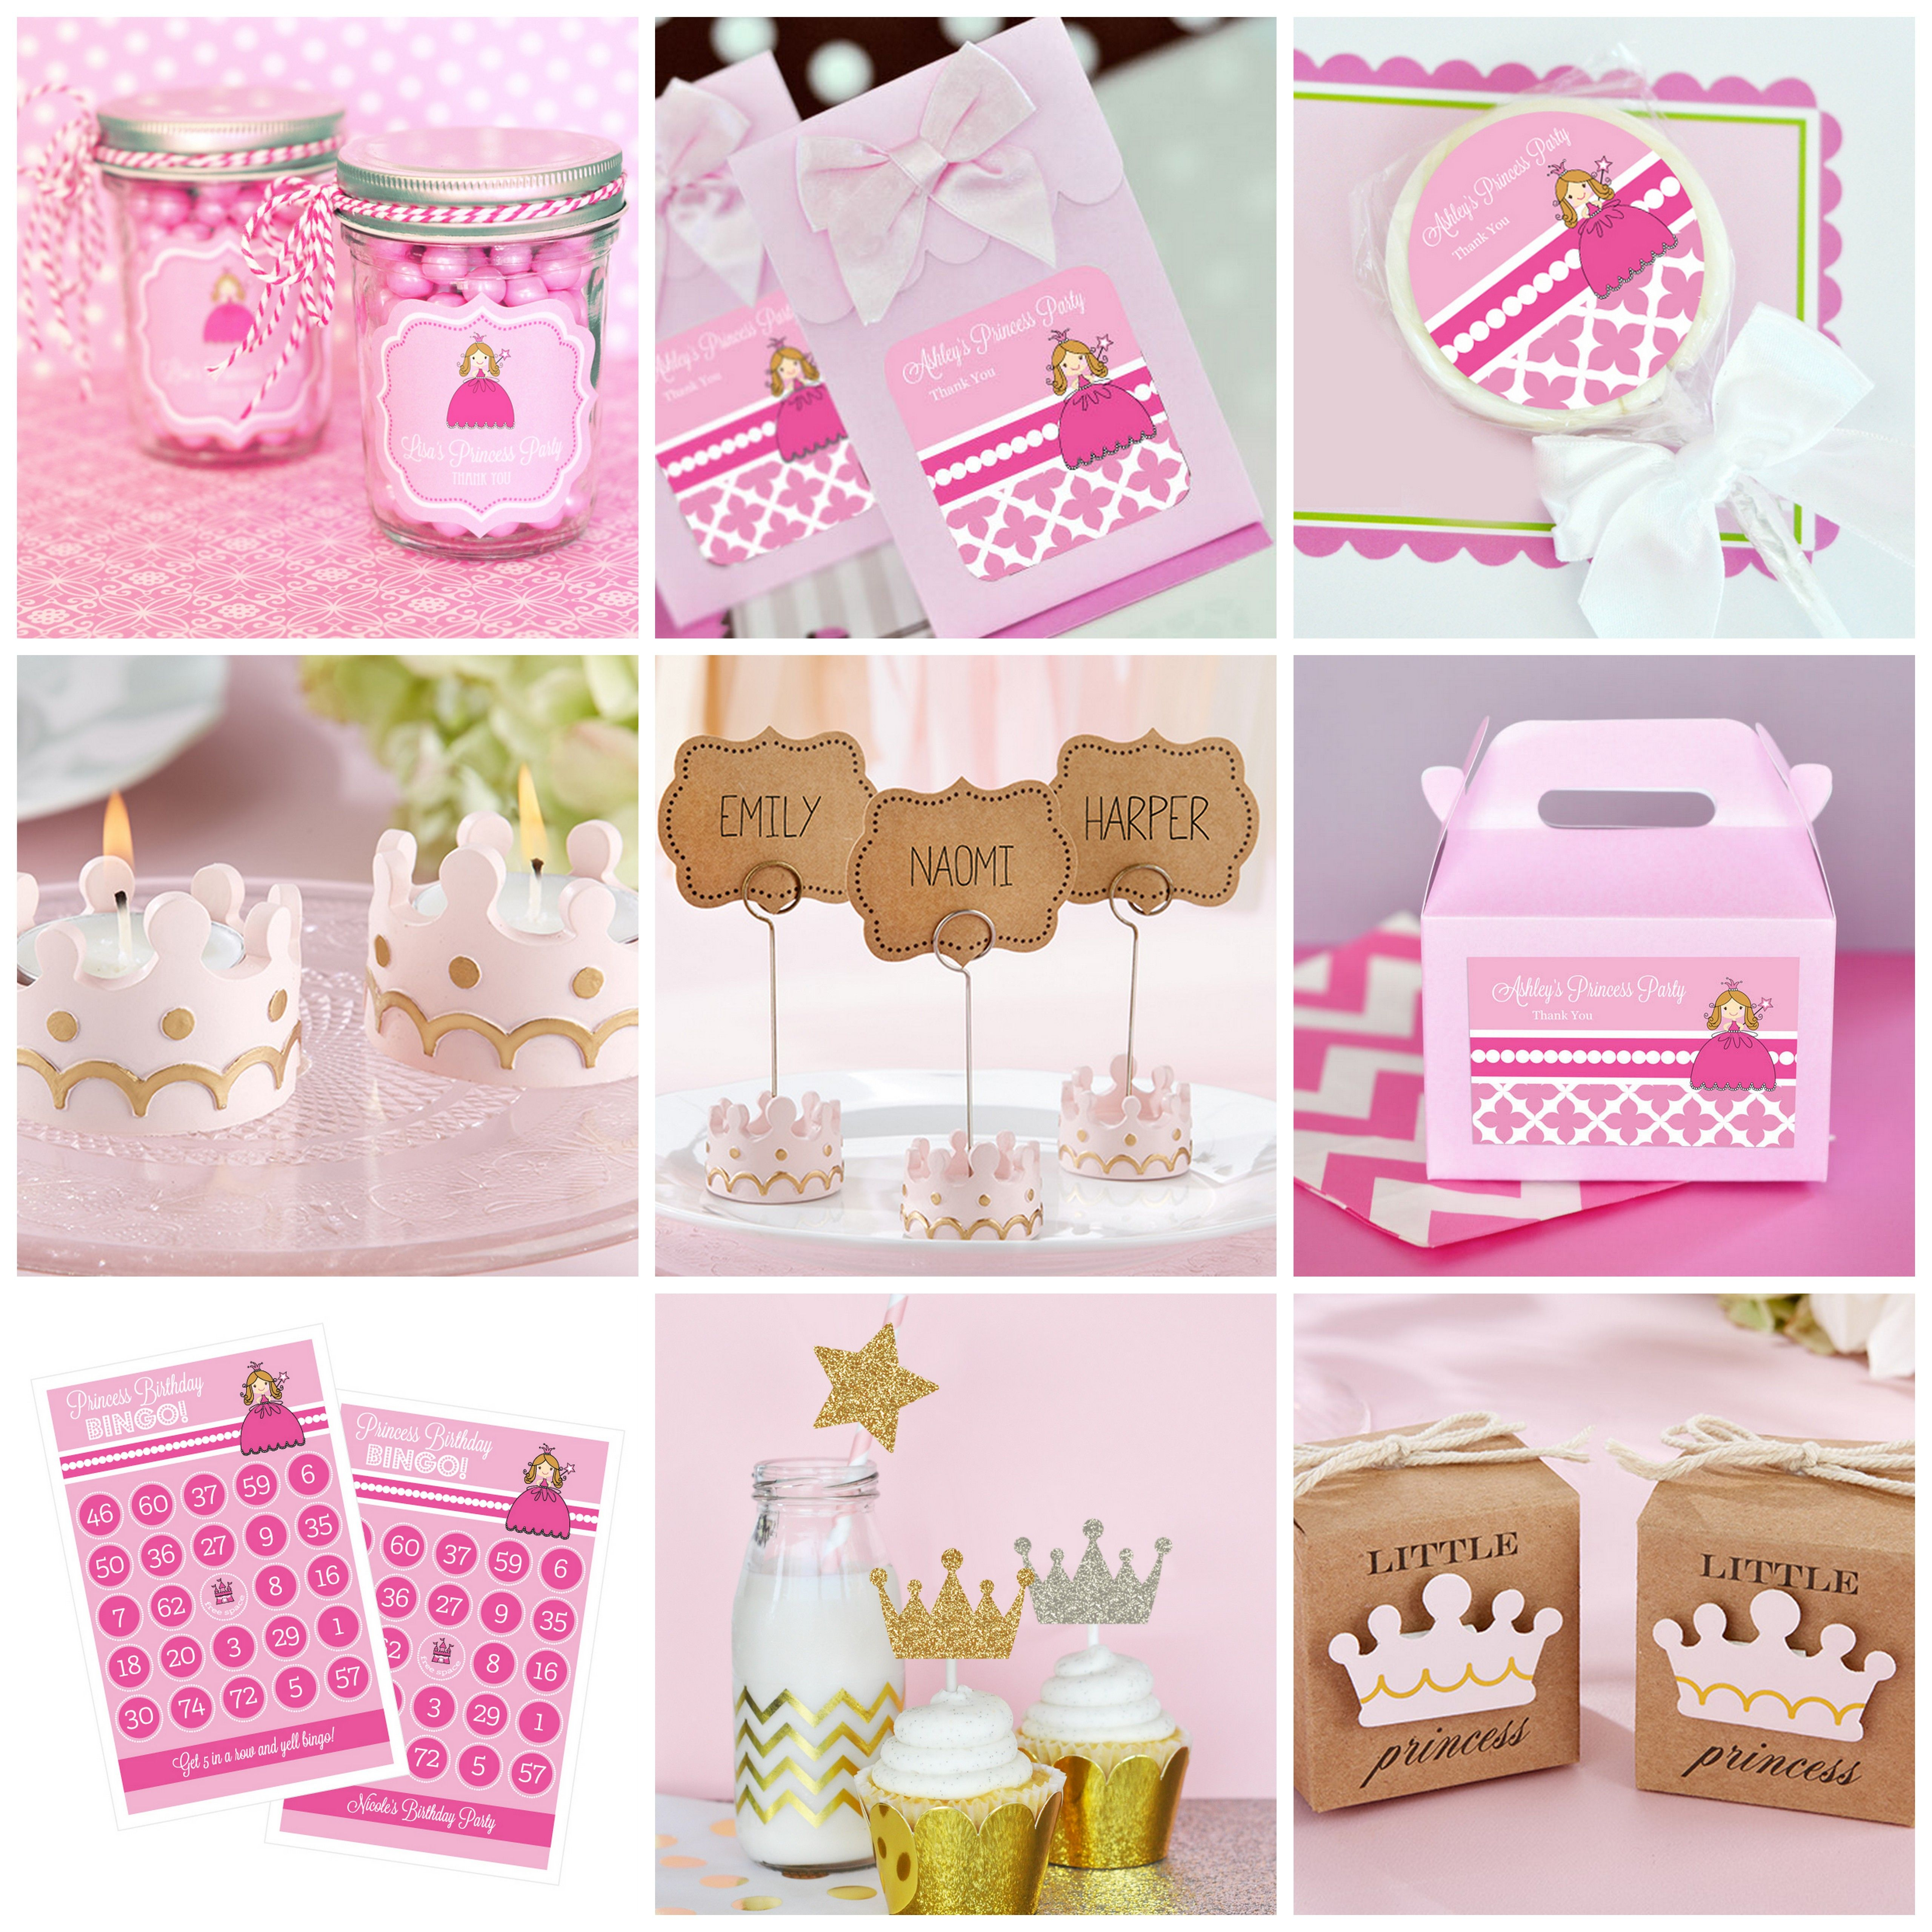 Little Princess Baby Shower Party Favors from